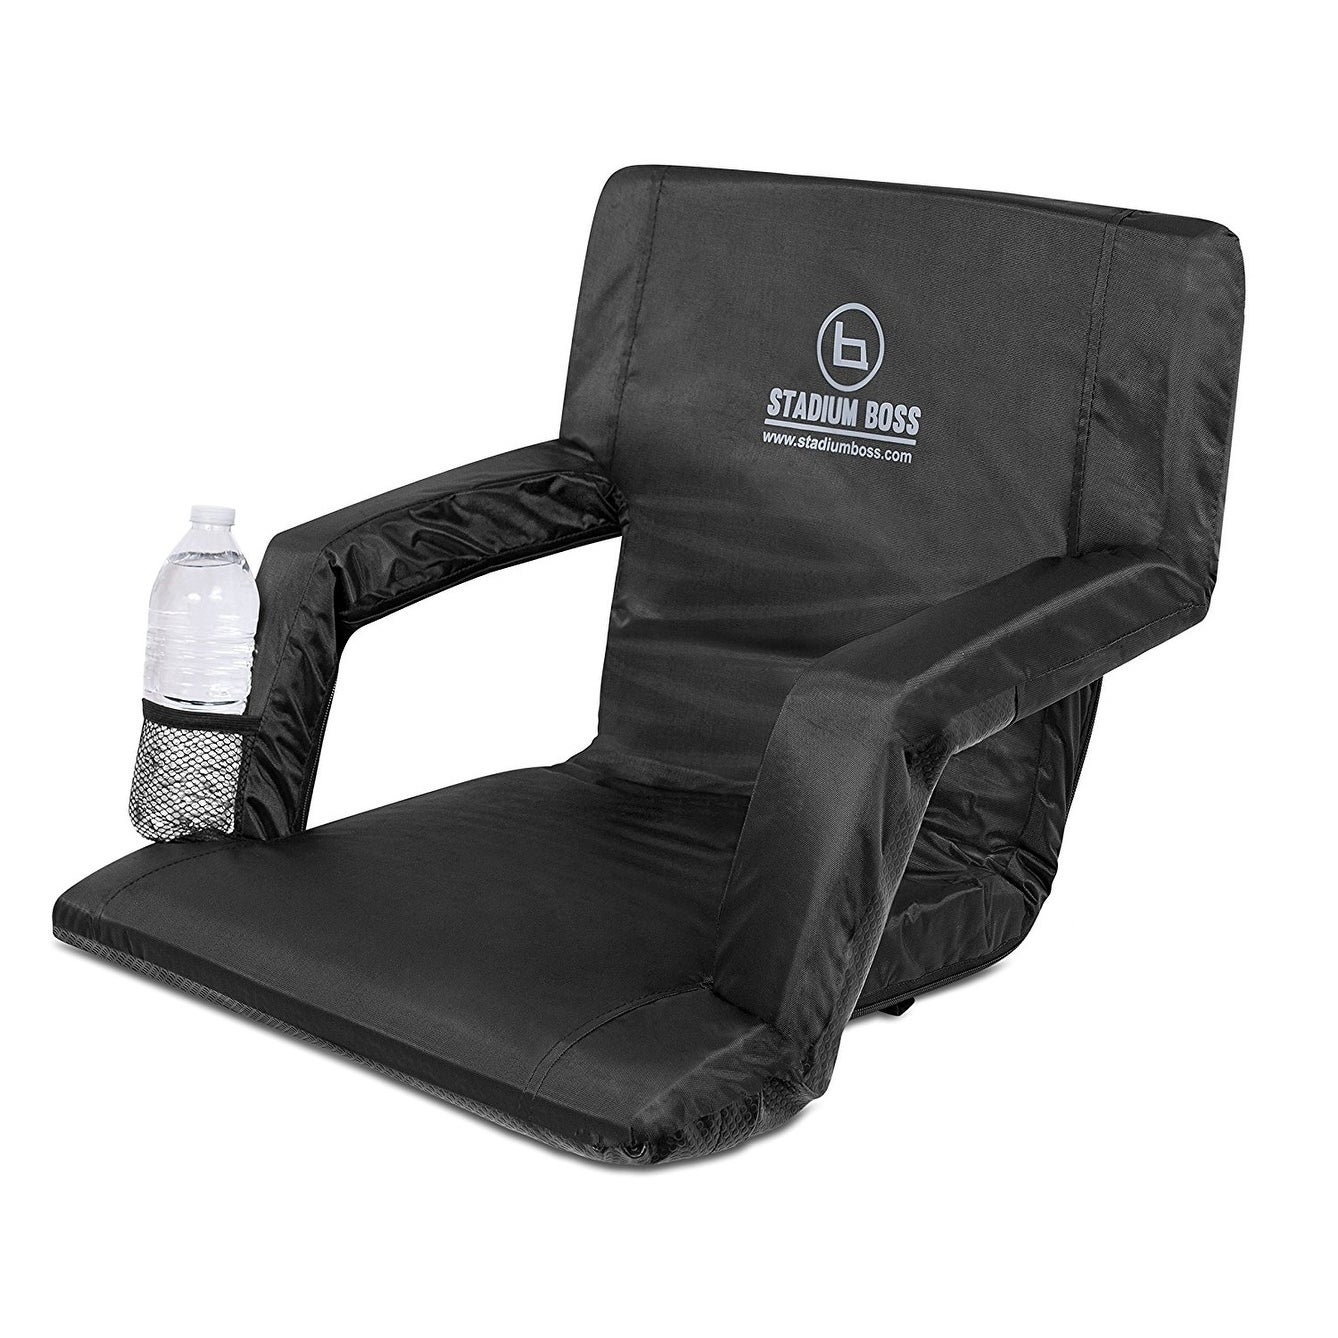 Picture of: Wide Stadium Seats Chairs For Bleachers Or Benches Padded Cushion Backs Portable Sporting Goods Other Outdoor Sports